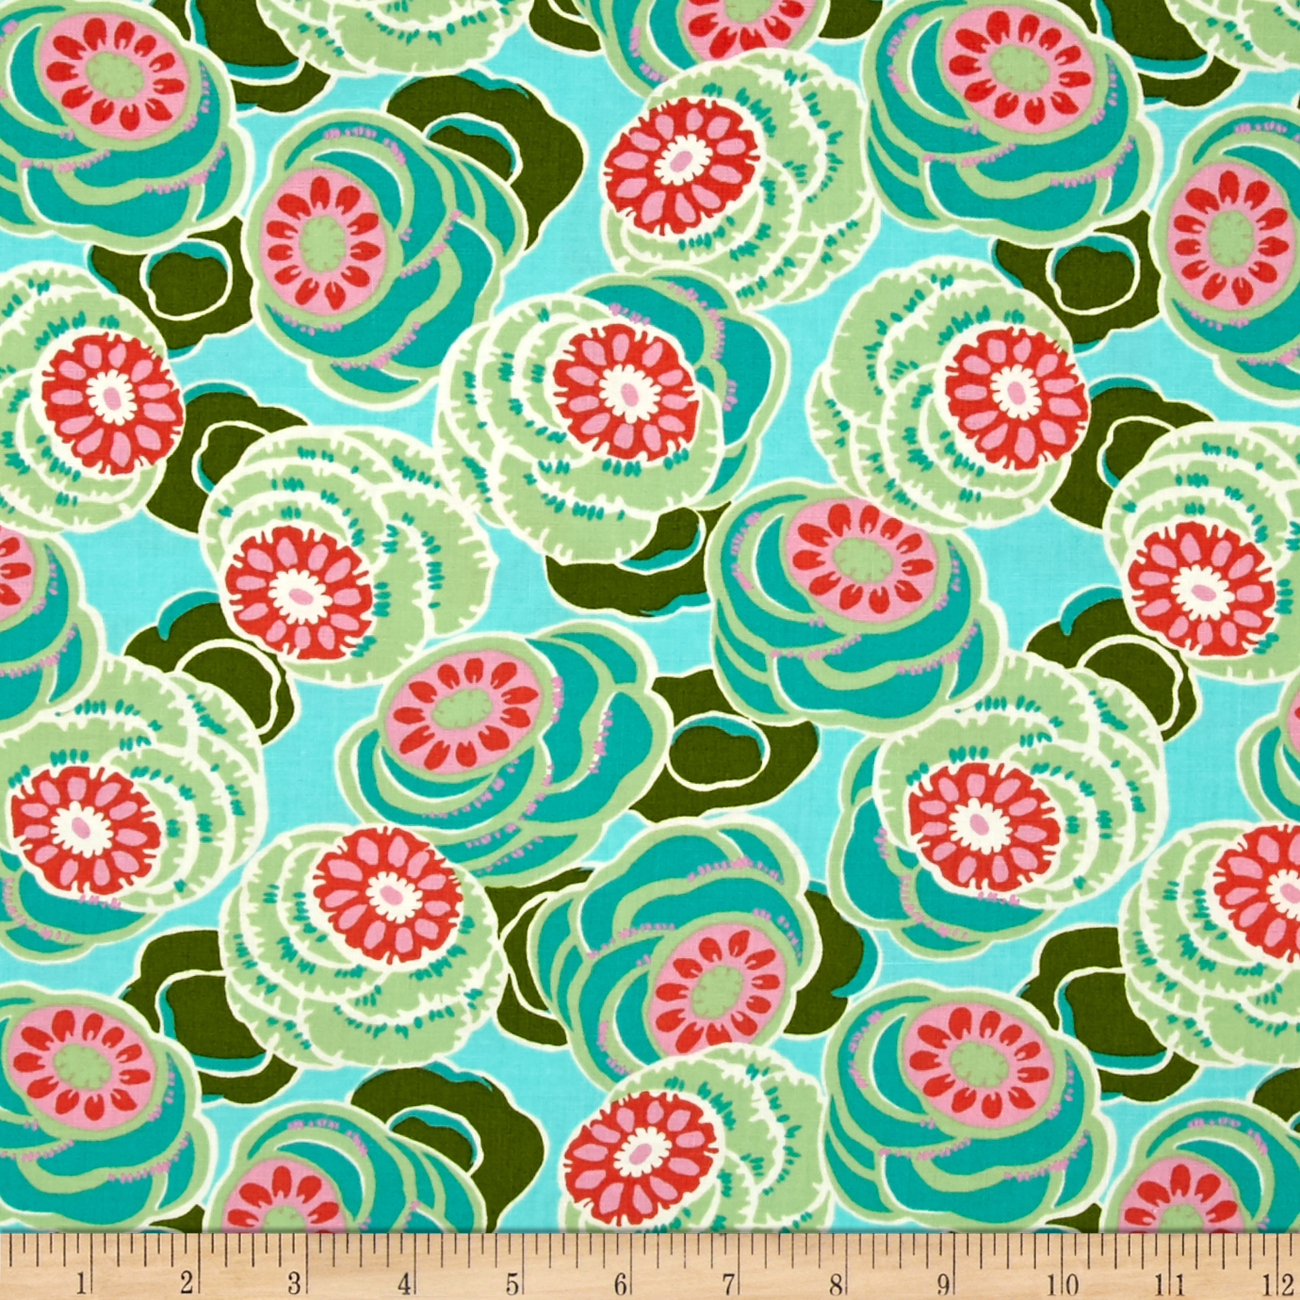 Amy Butler Dream Weaver Clouded Floral Seagl Fabric by Westminster in USA